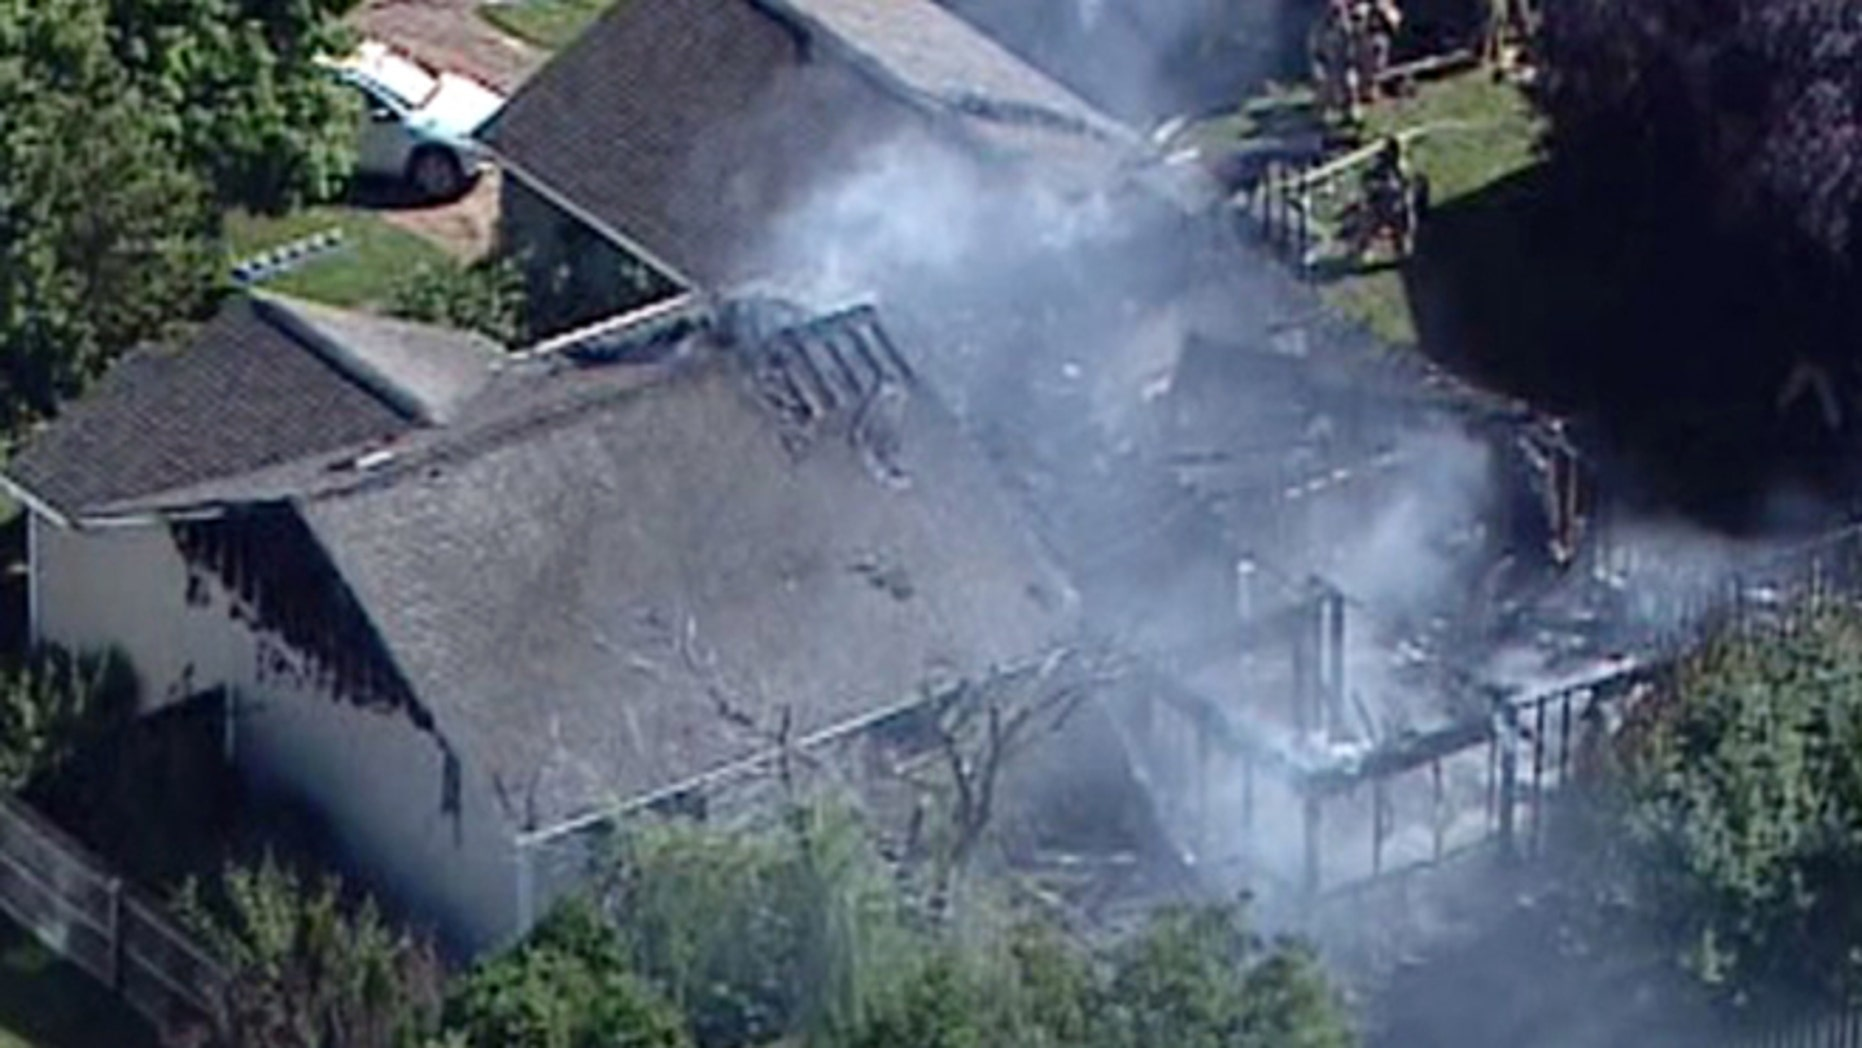 July 25: In this frame grab, smoke rises from a house in Columbus, Ind., after a small plane crashed into the home injuring two people who were on the plane.